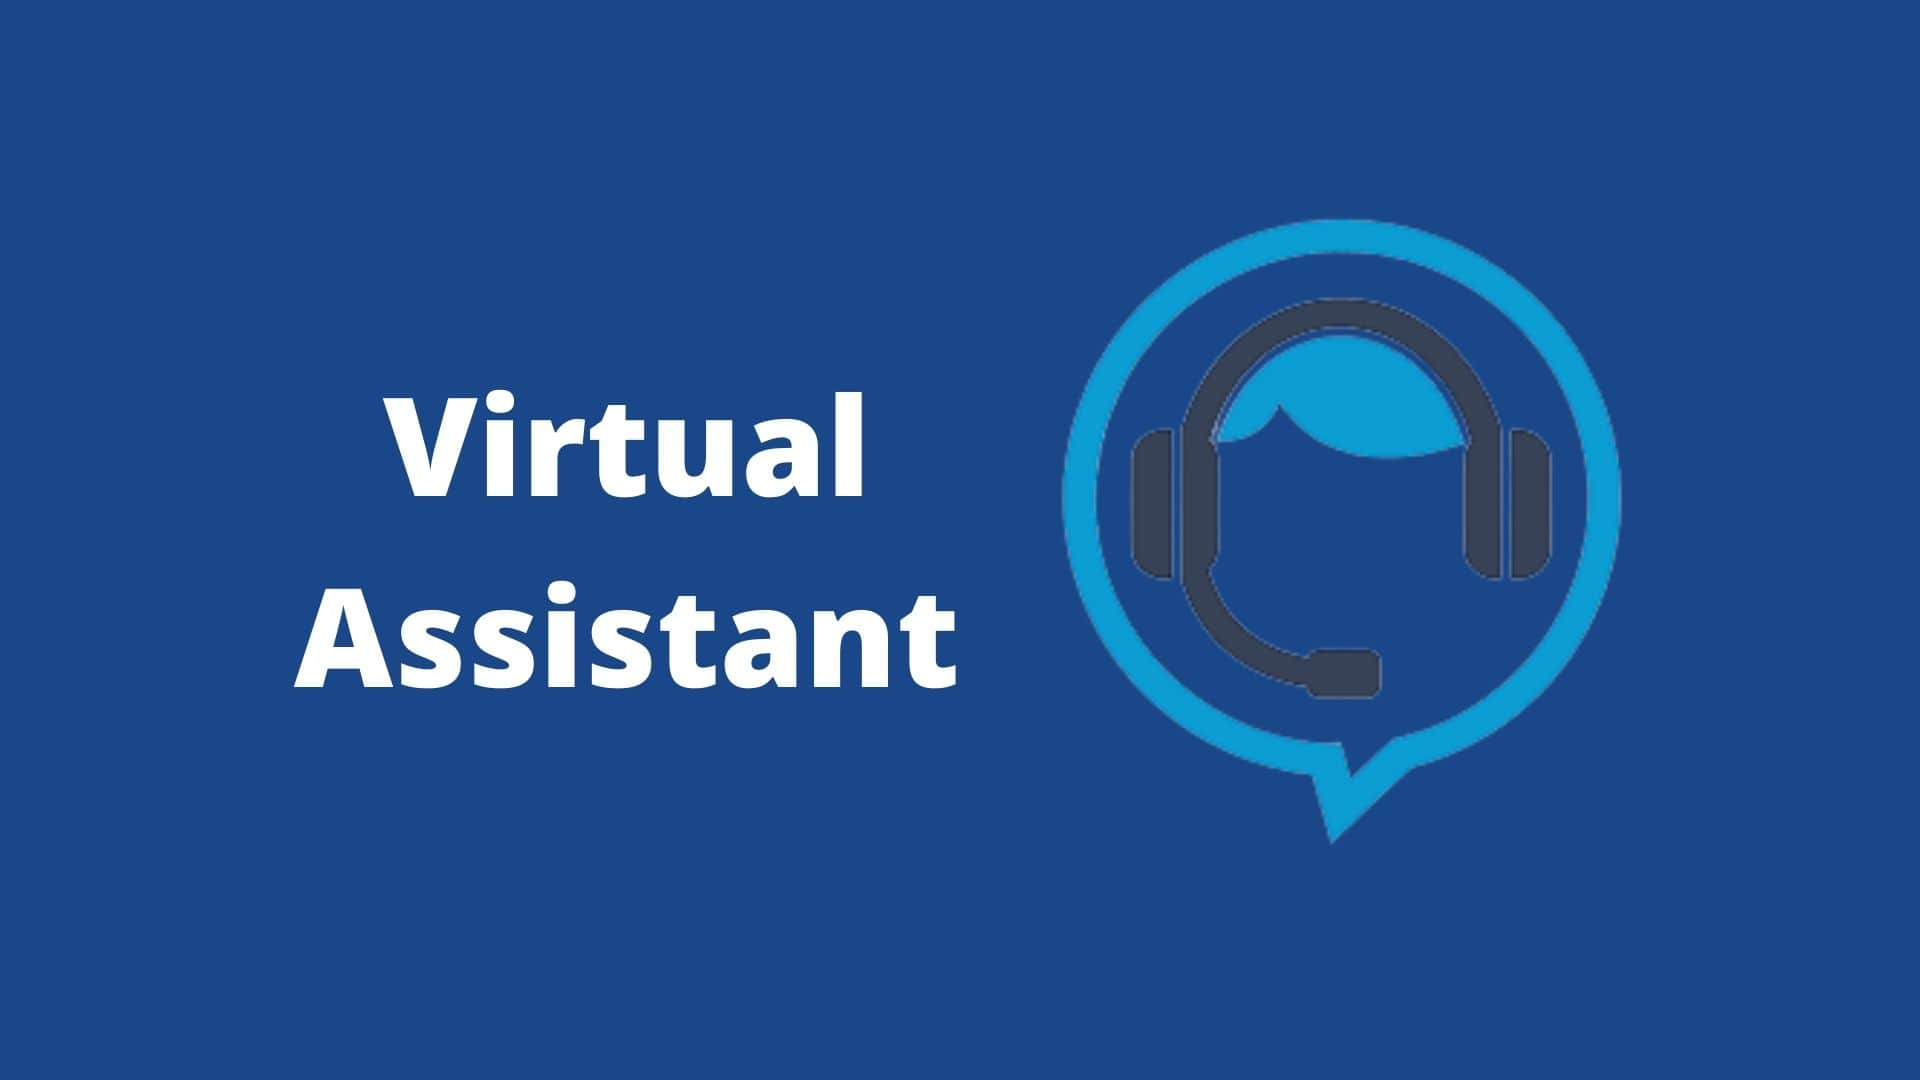 Virtual Assistance - Small Business Idea